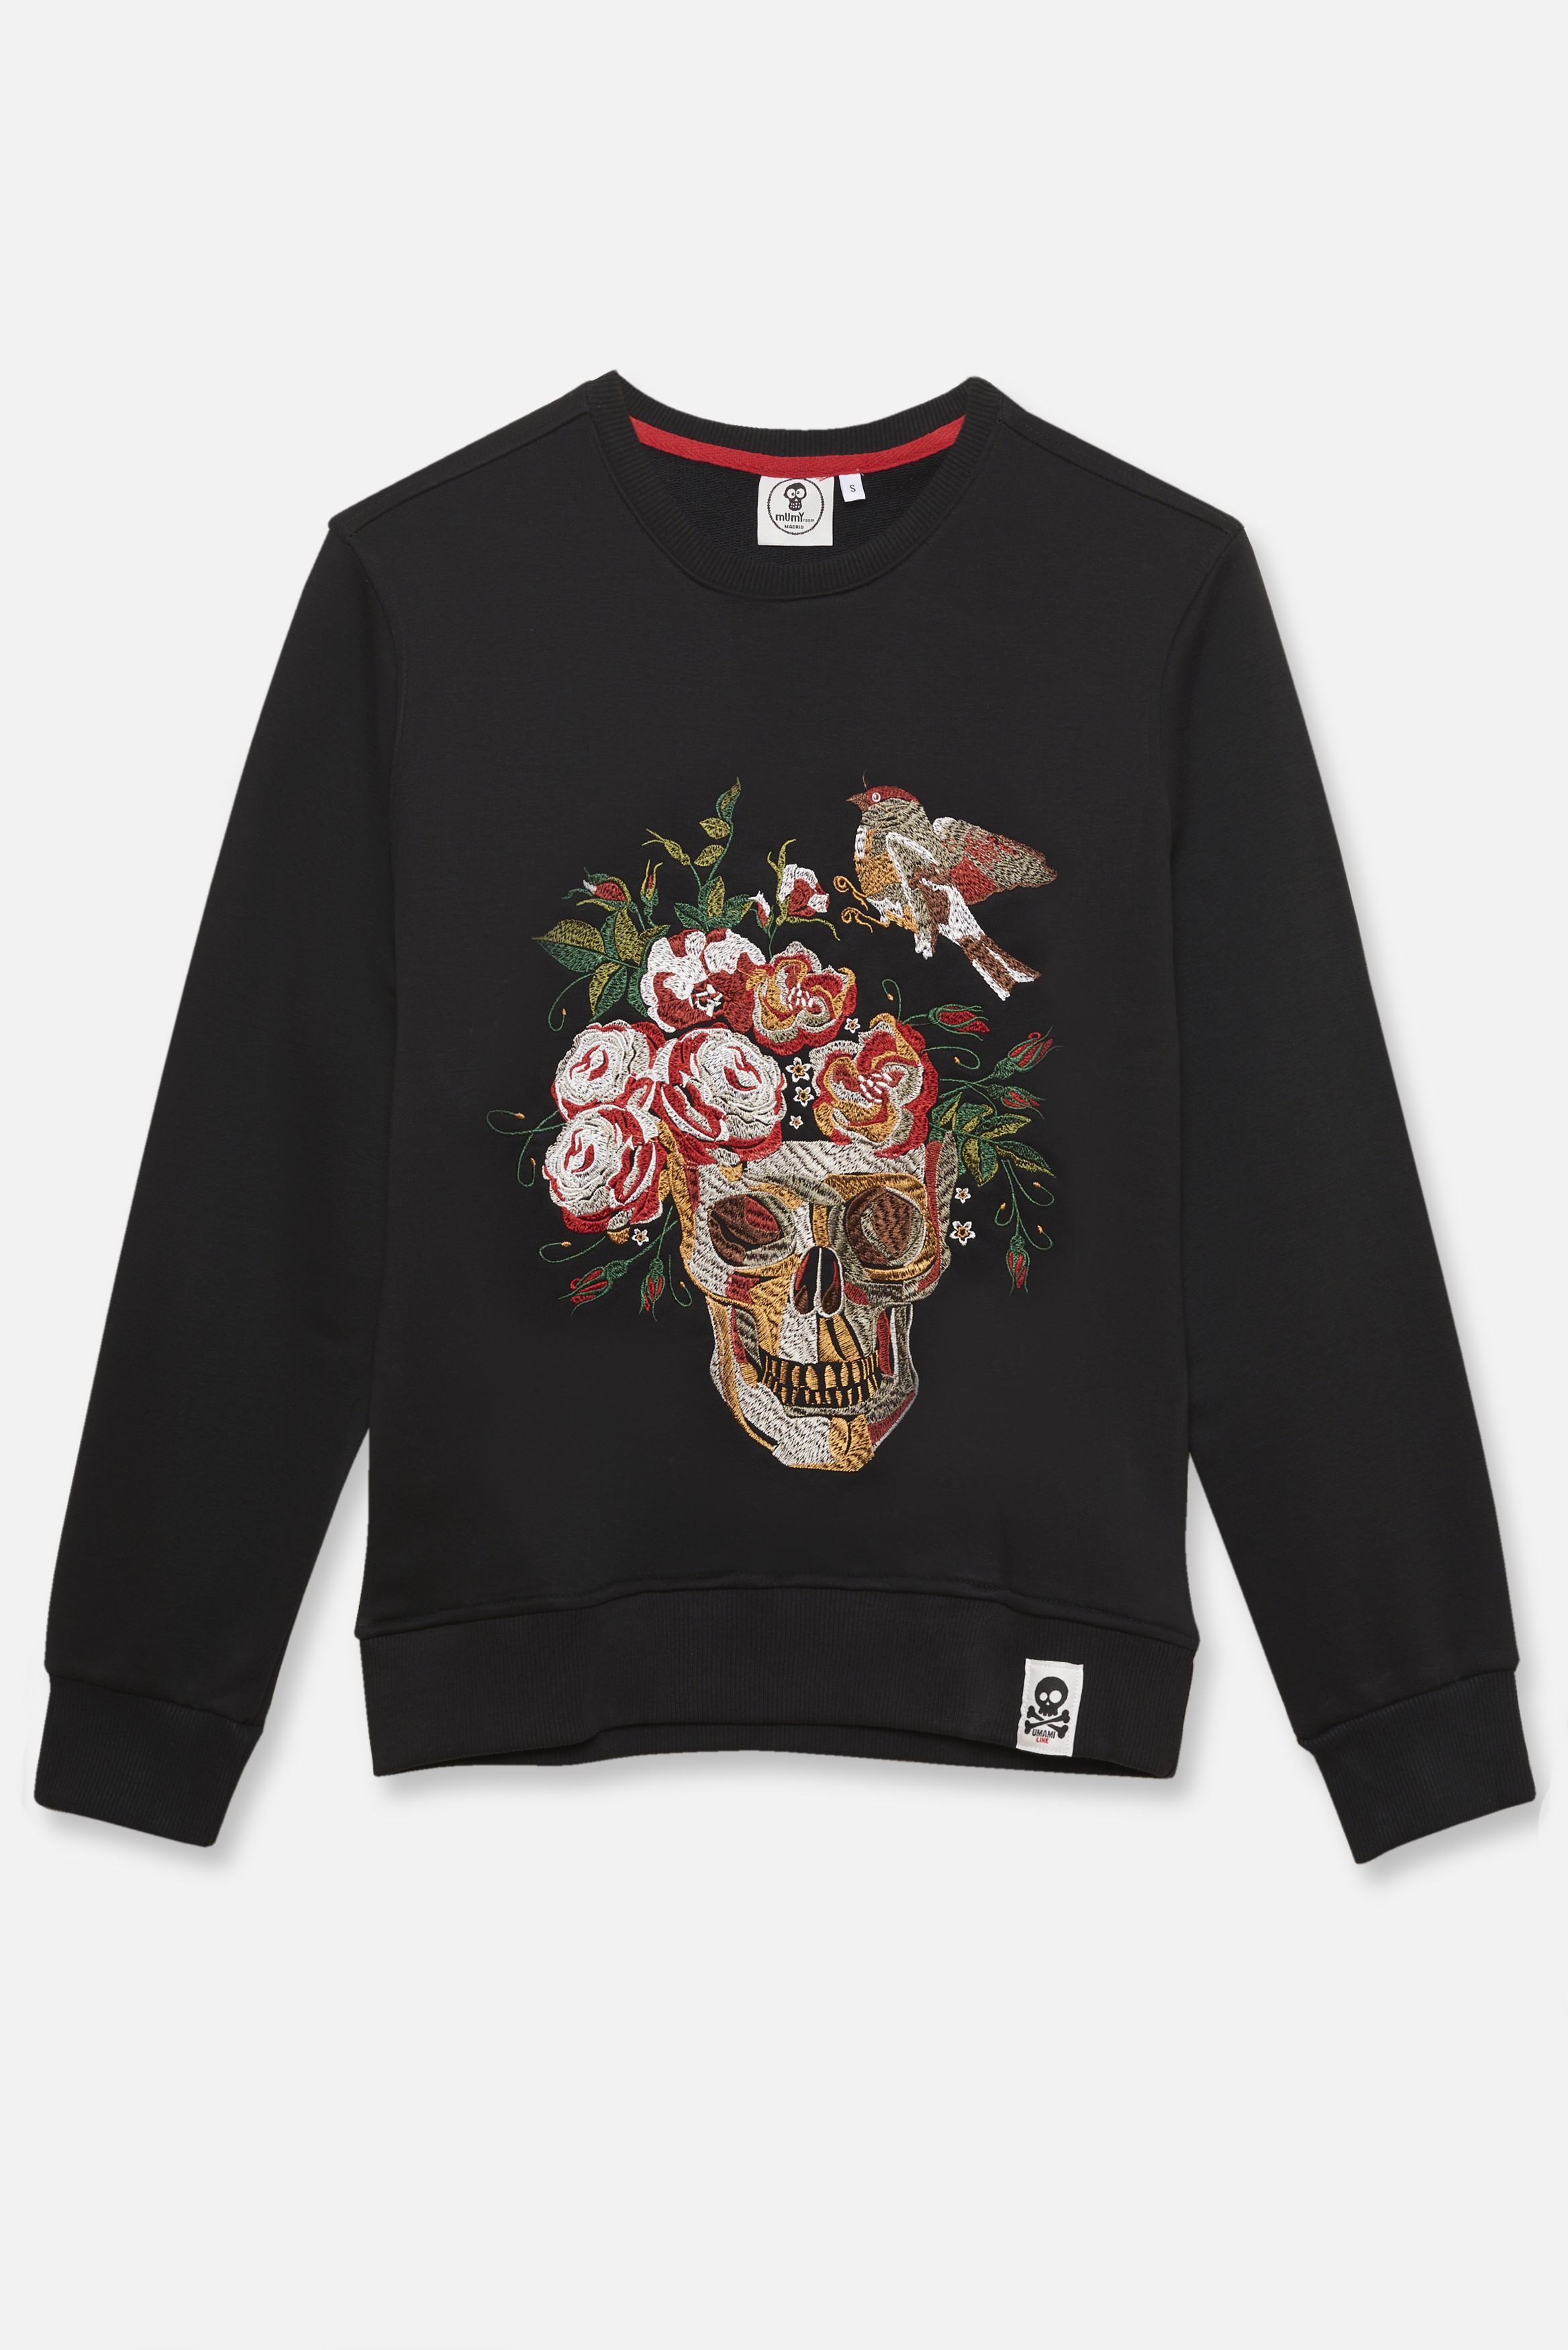 ADULT´S EMBROIDERED JERSEY UMAMI LINE SKULL WITH FLOWER CROWN